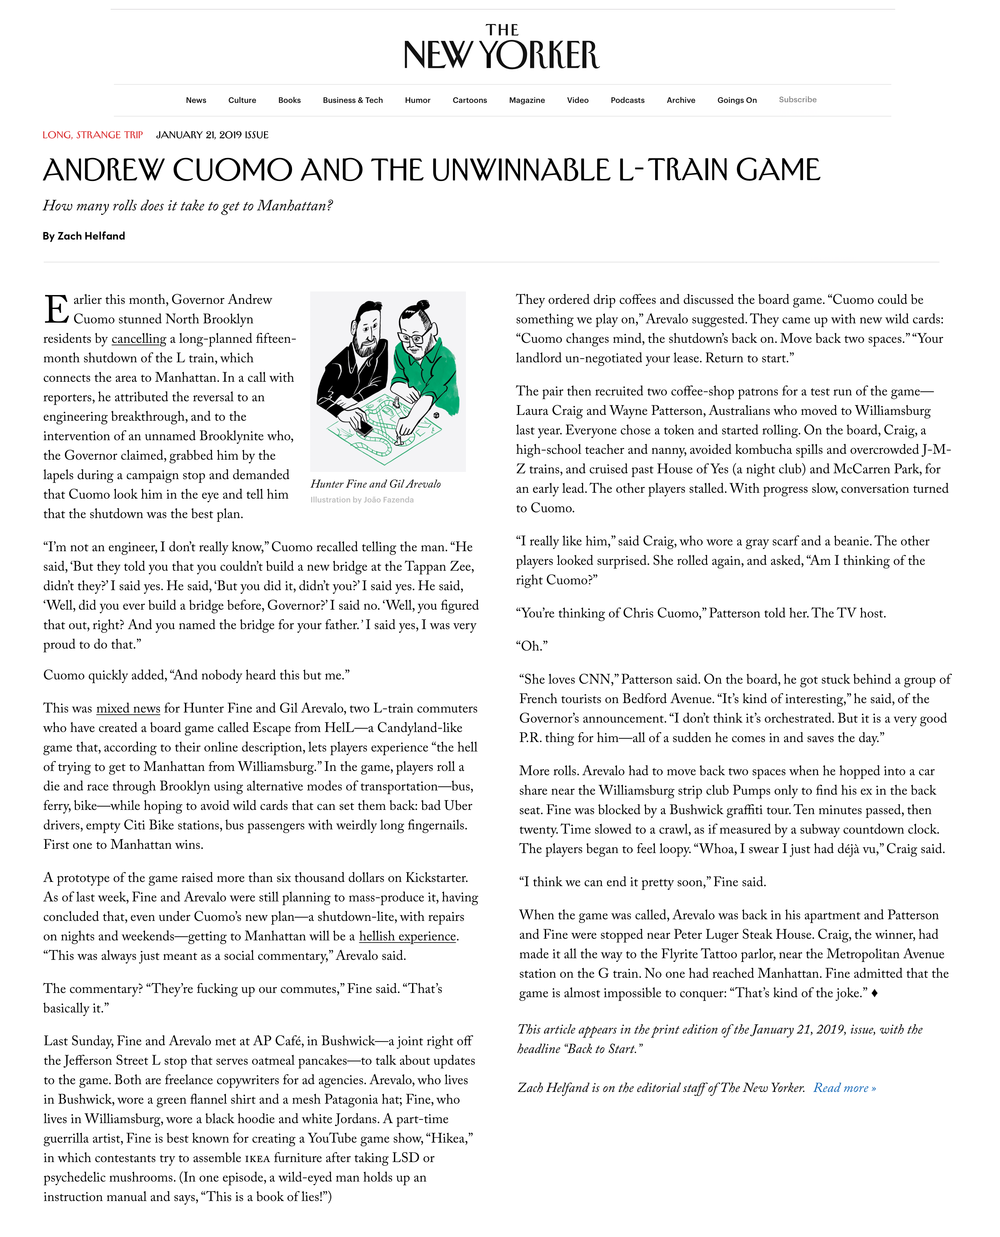 newyorker_article.png